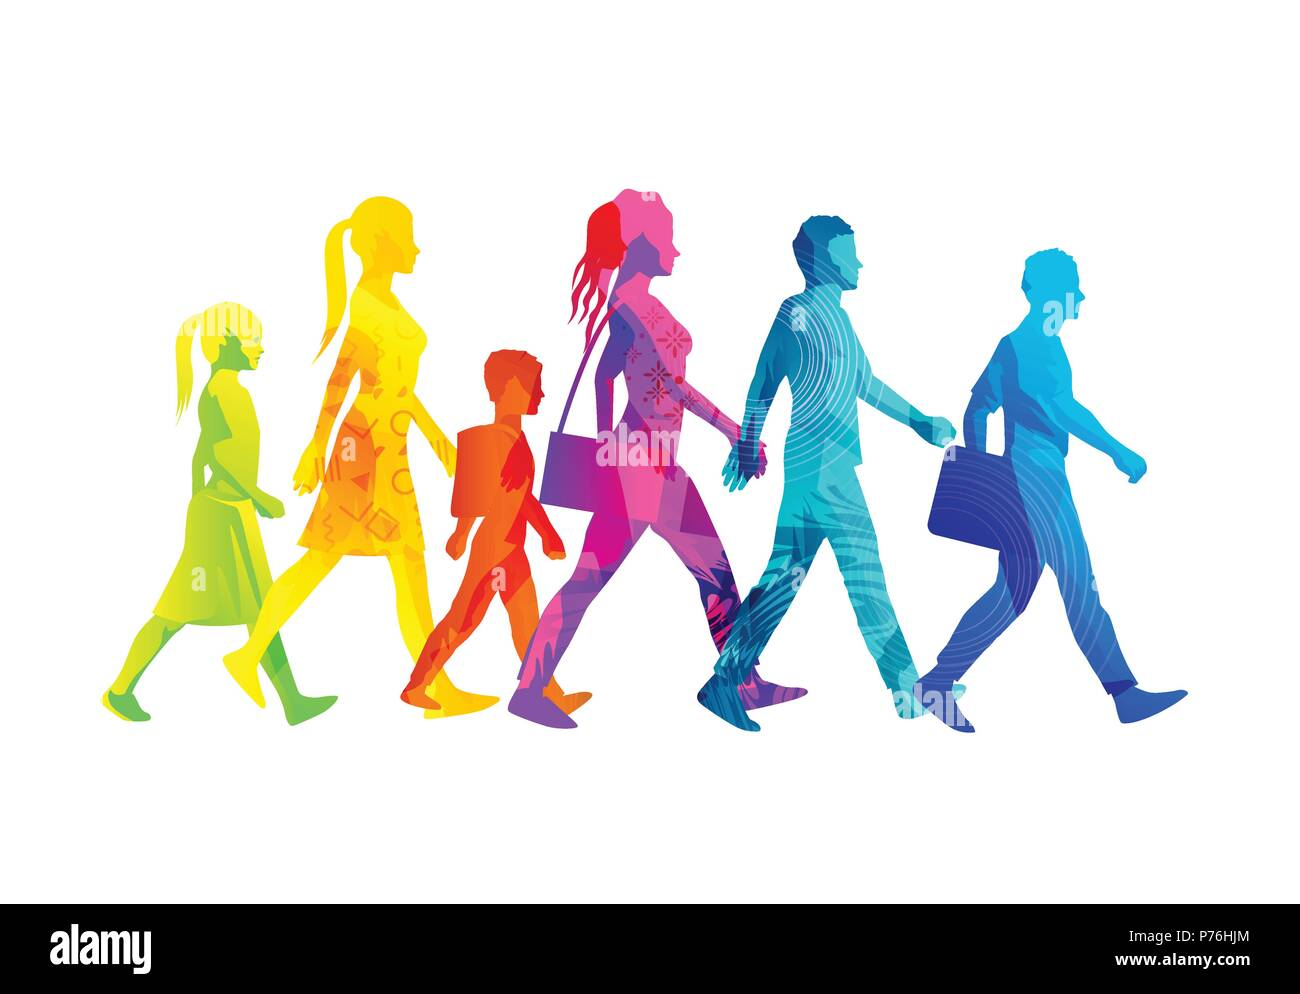 A selection of people silhouettes walking including children, women and men. Colourful texture vector illustration. - Stock Image